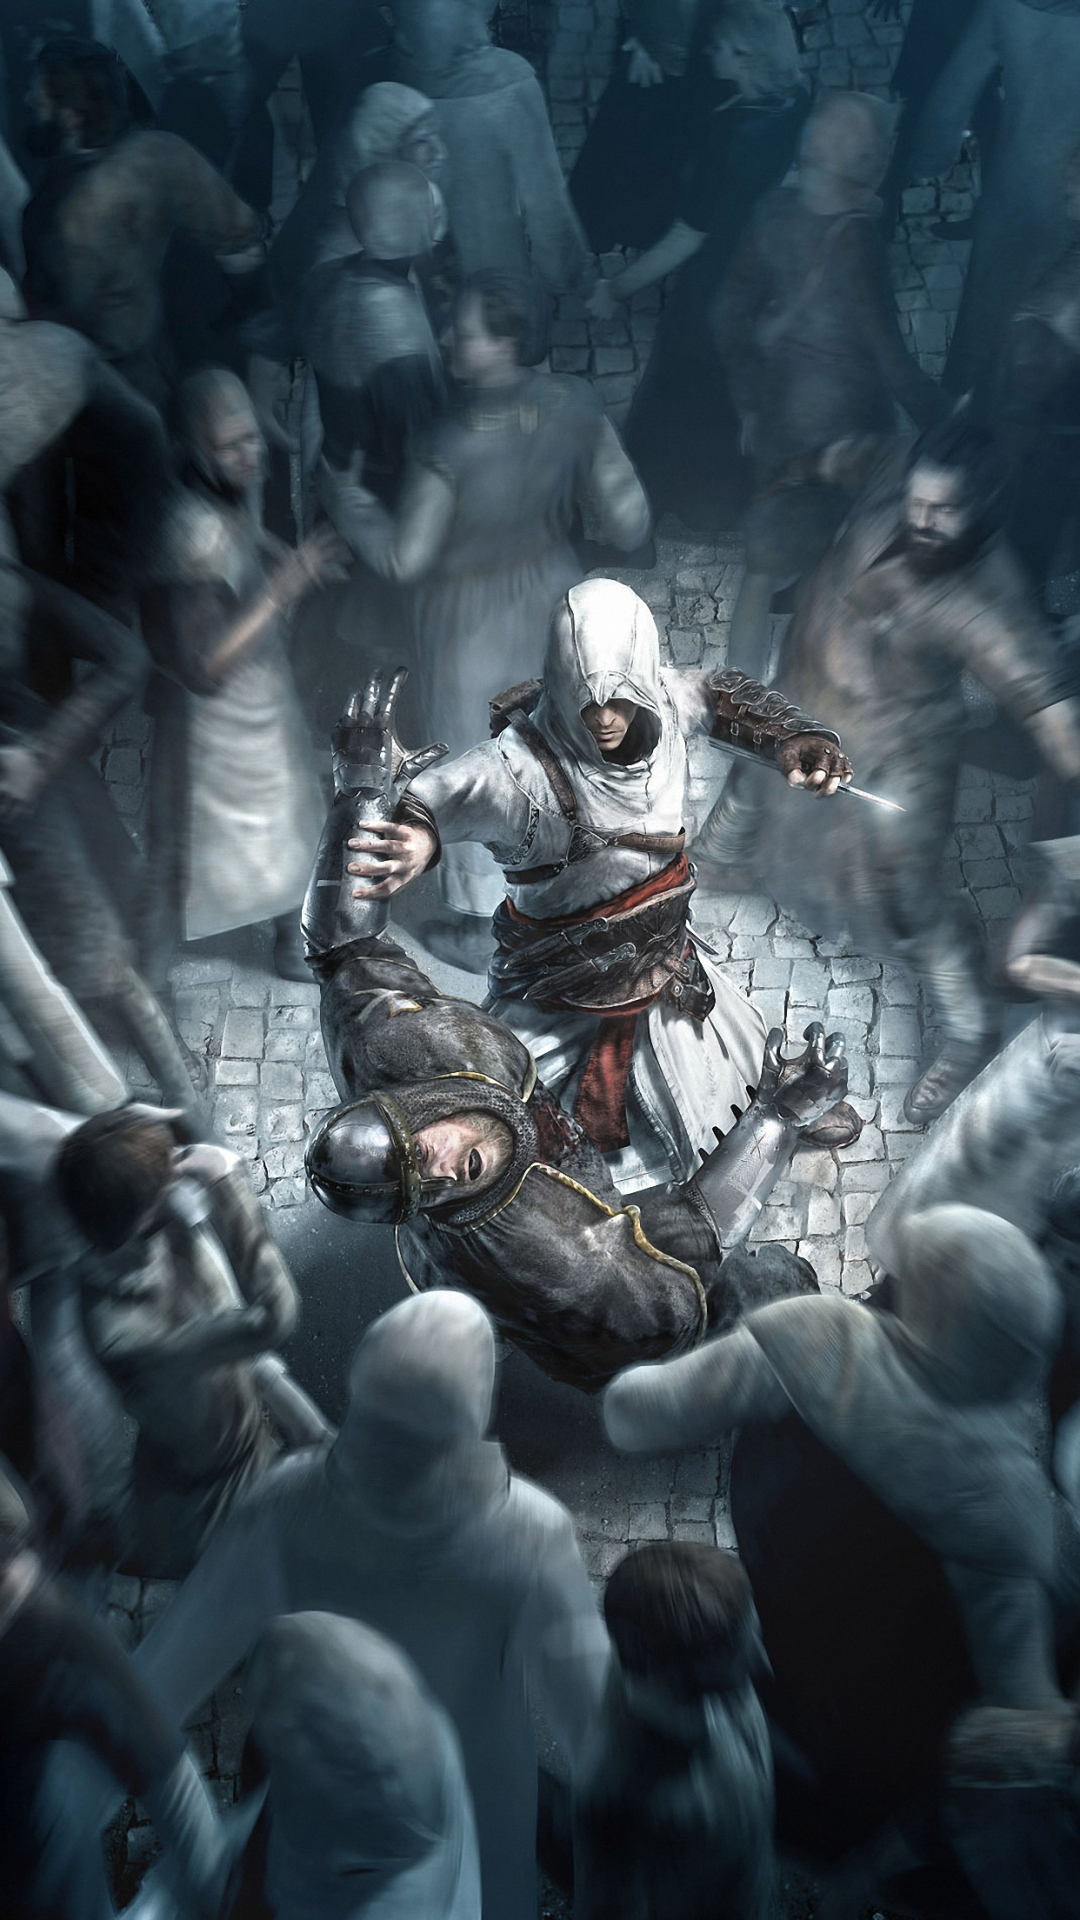 Phone Assassins Creed Wallpapers Wallpaper Cave